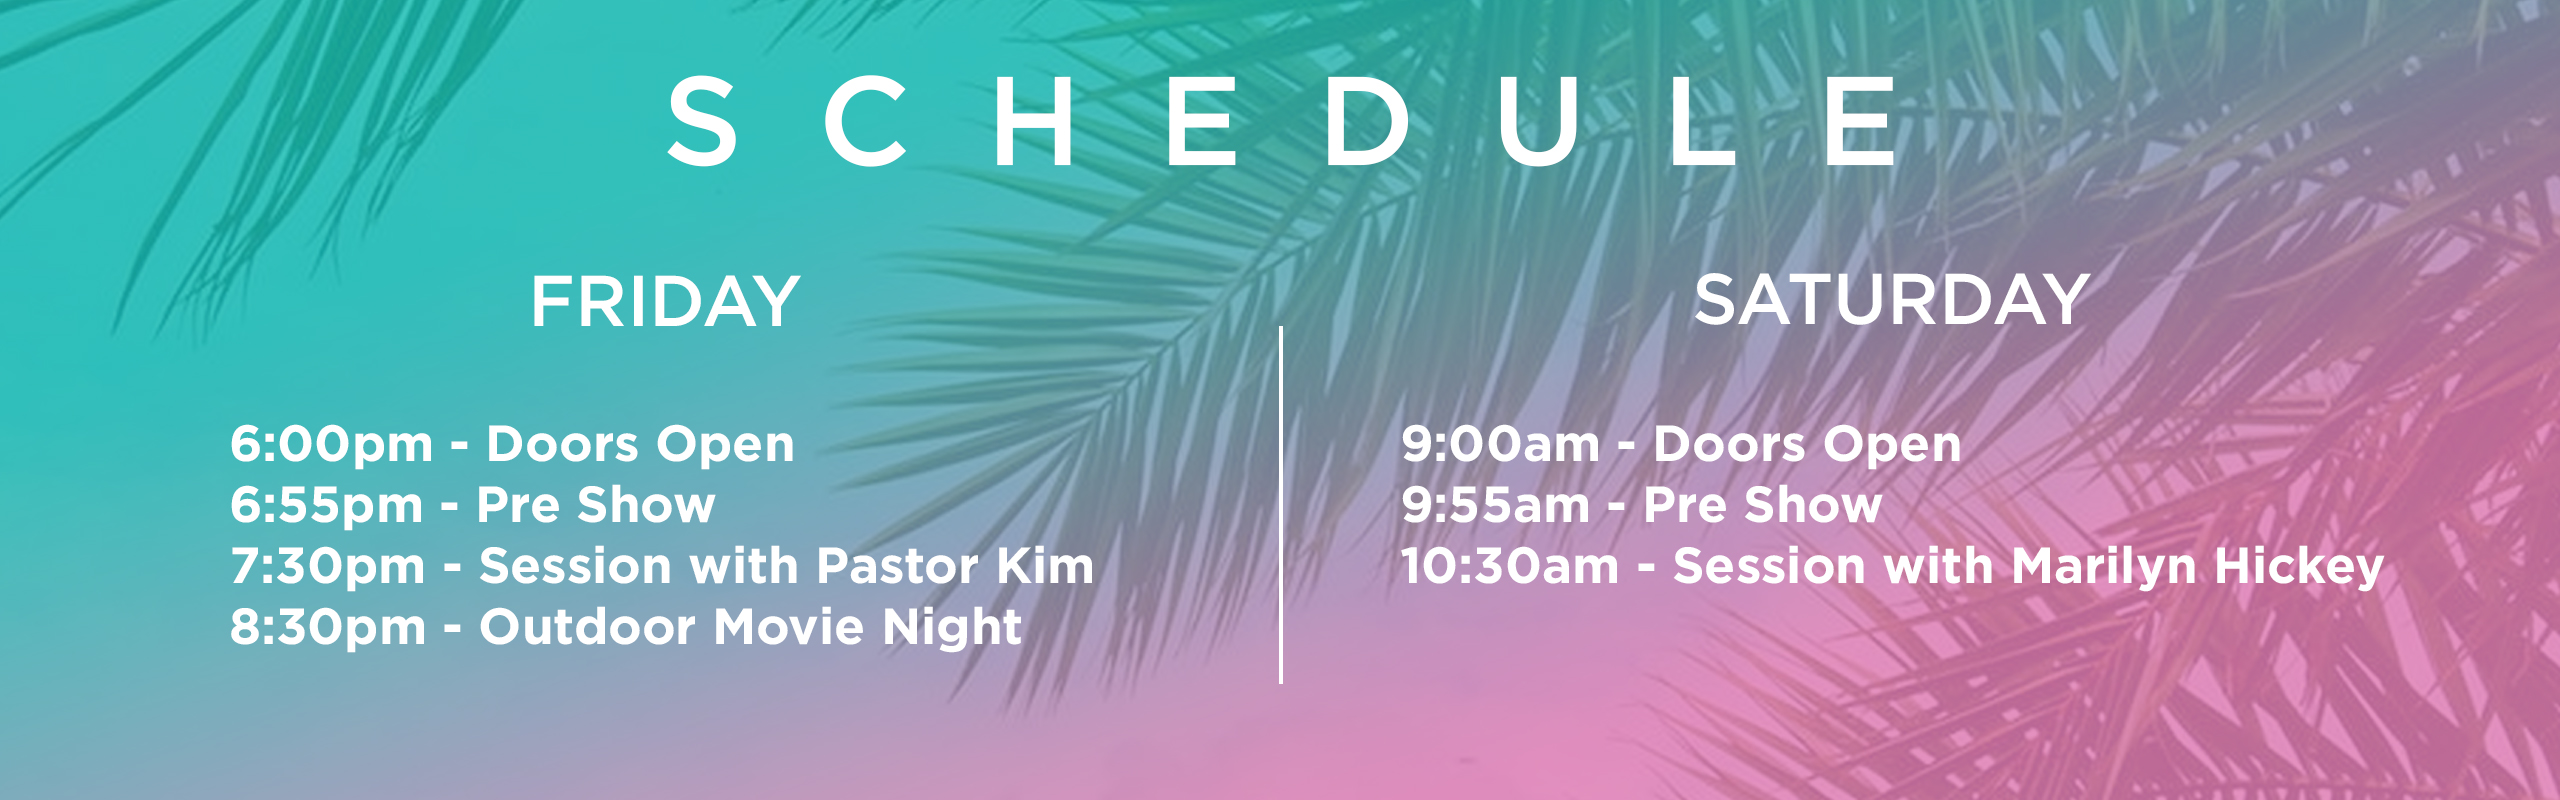 Heaven On Earth Schedule